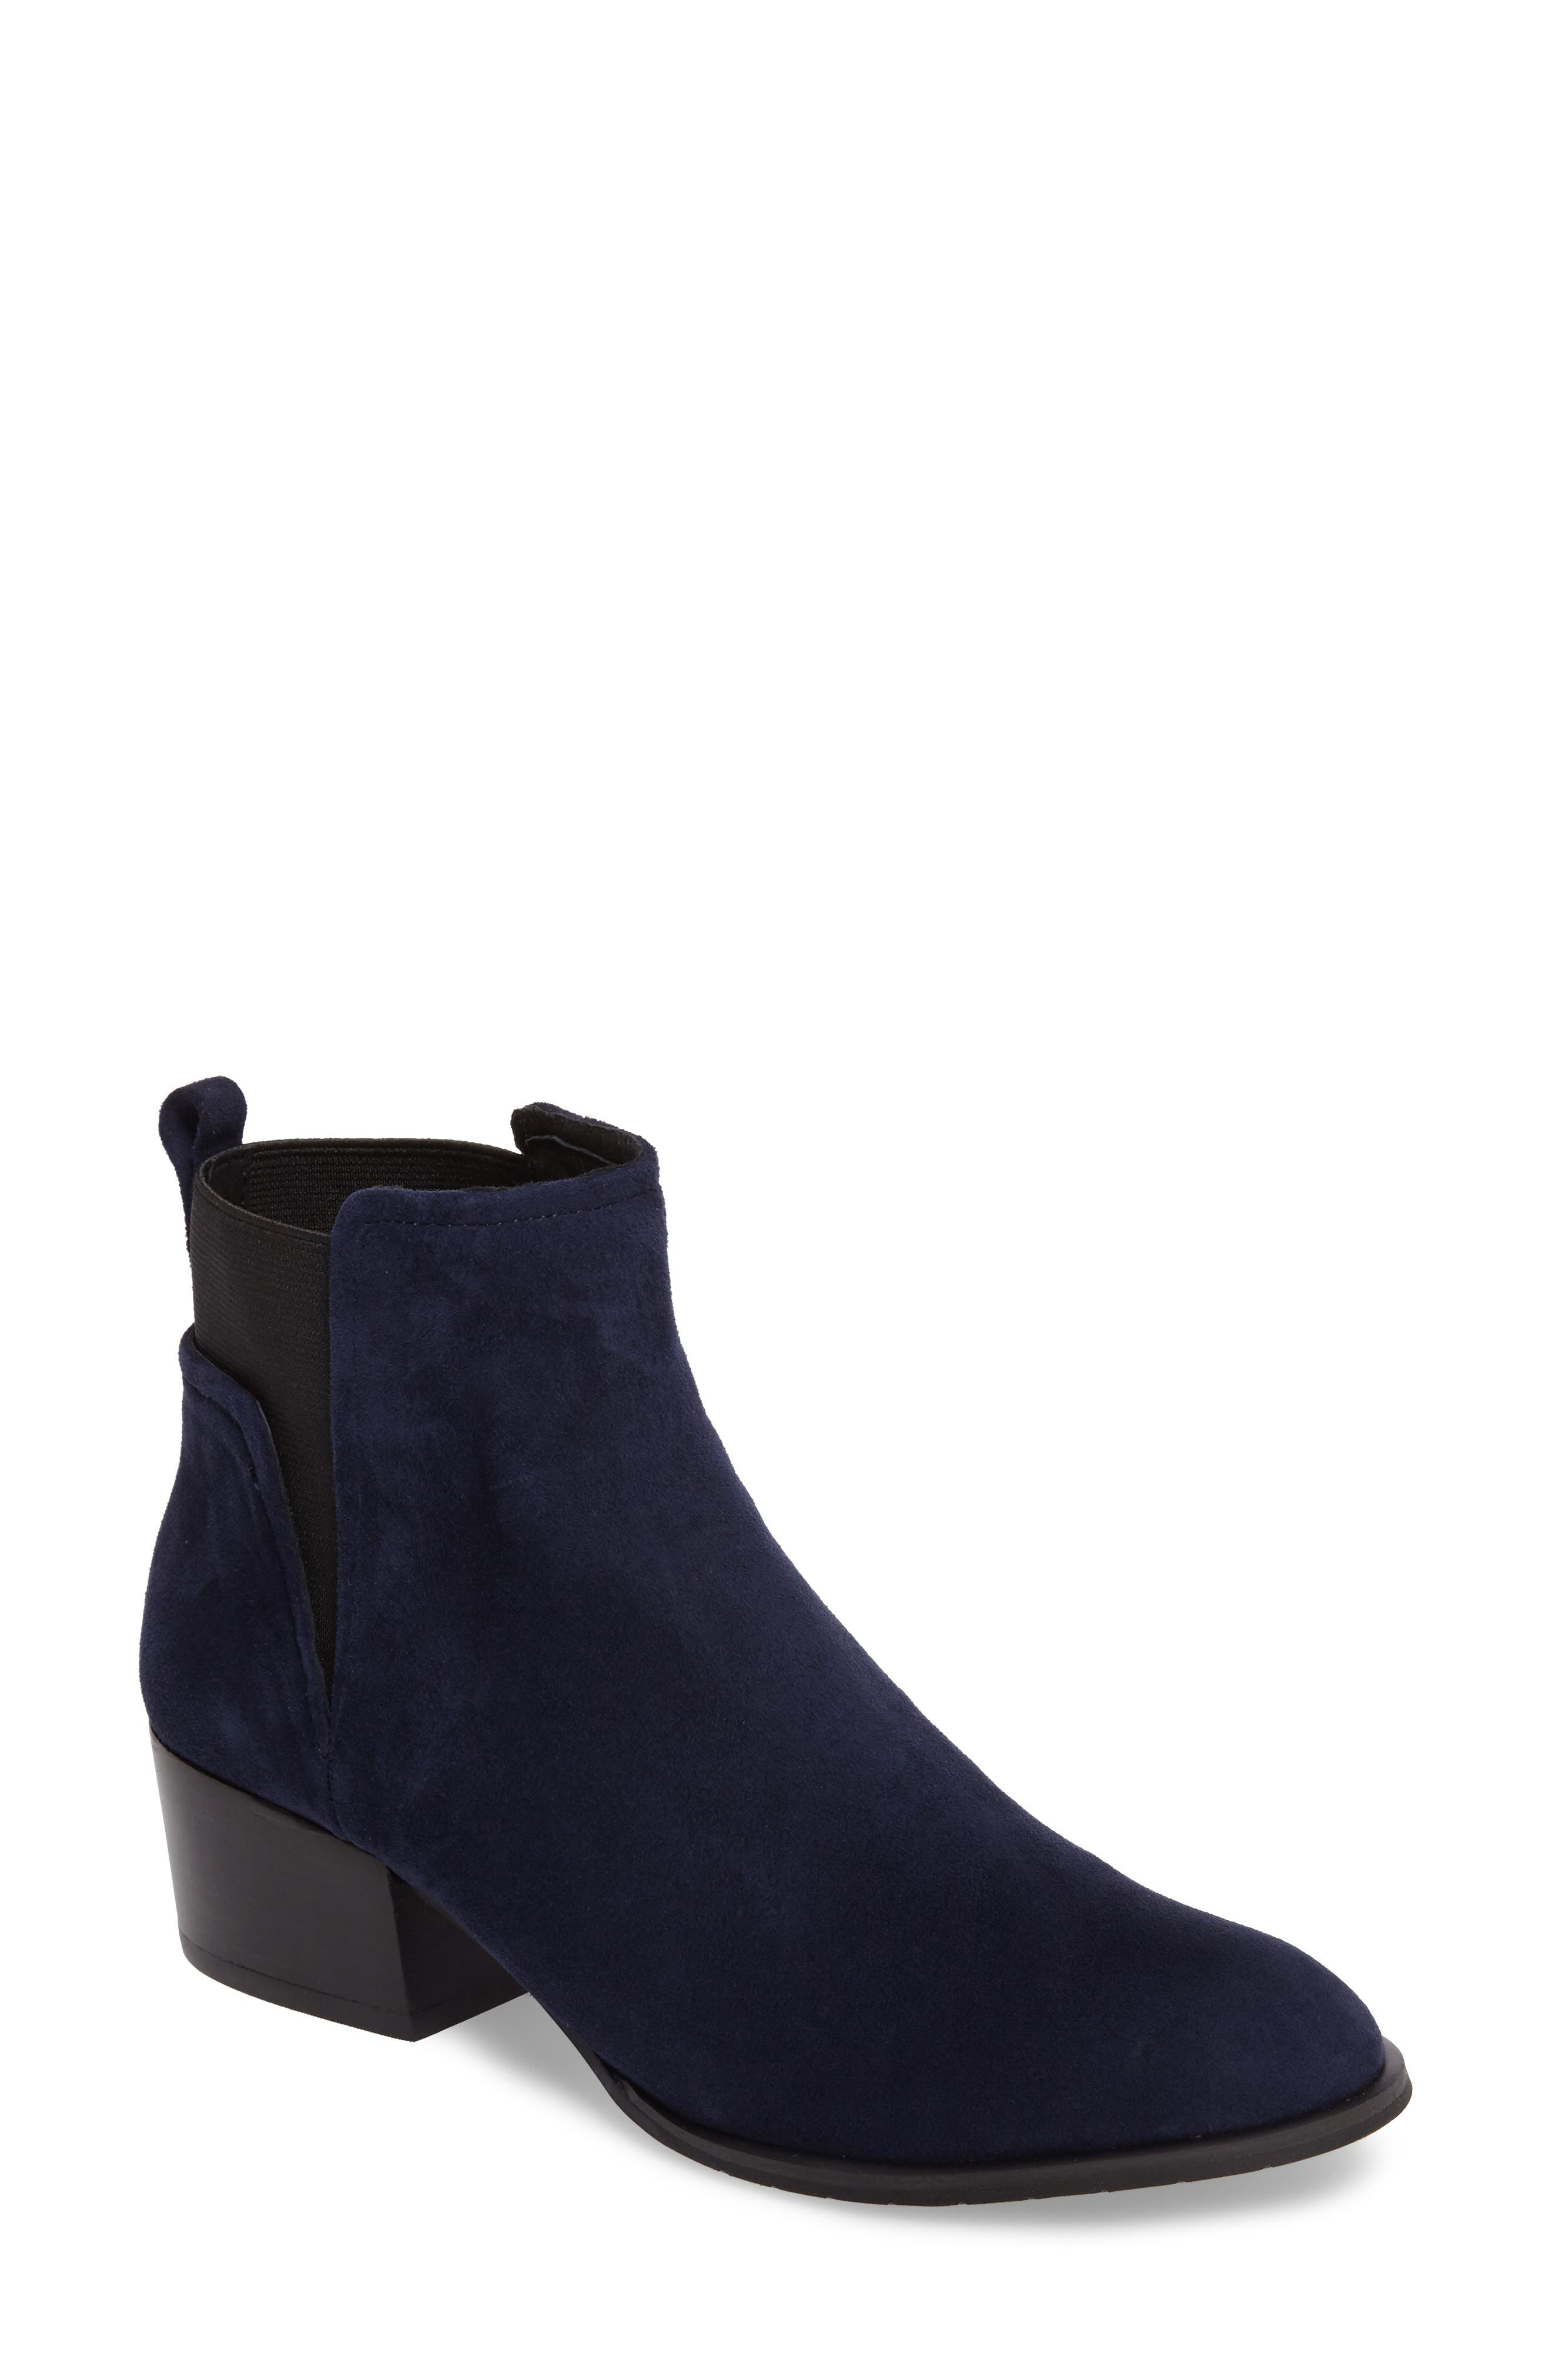 Artie Bootie,                         Main,                         color, Navy Suede